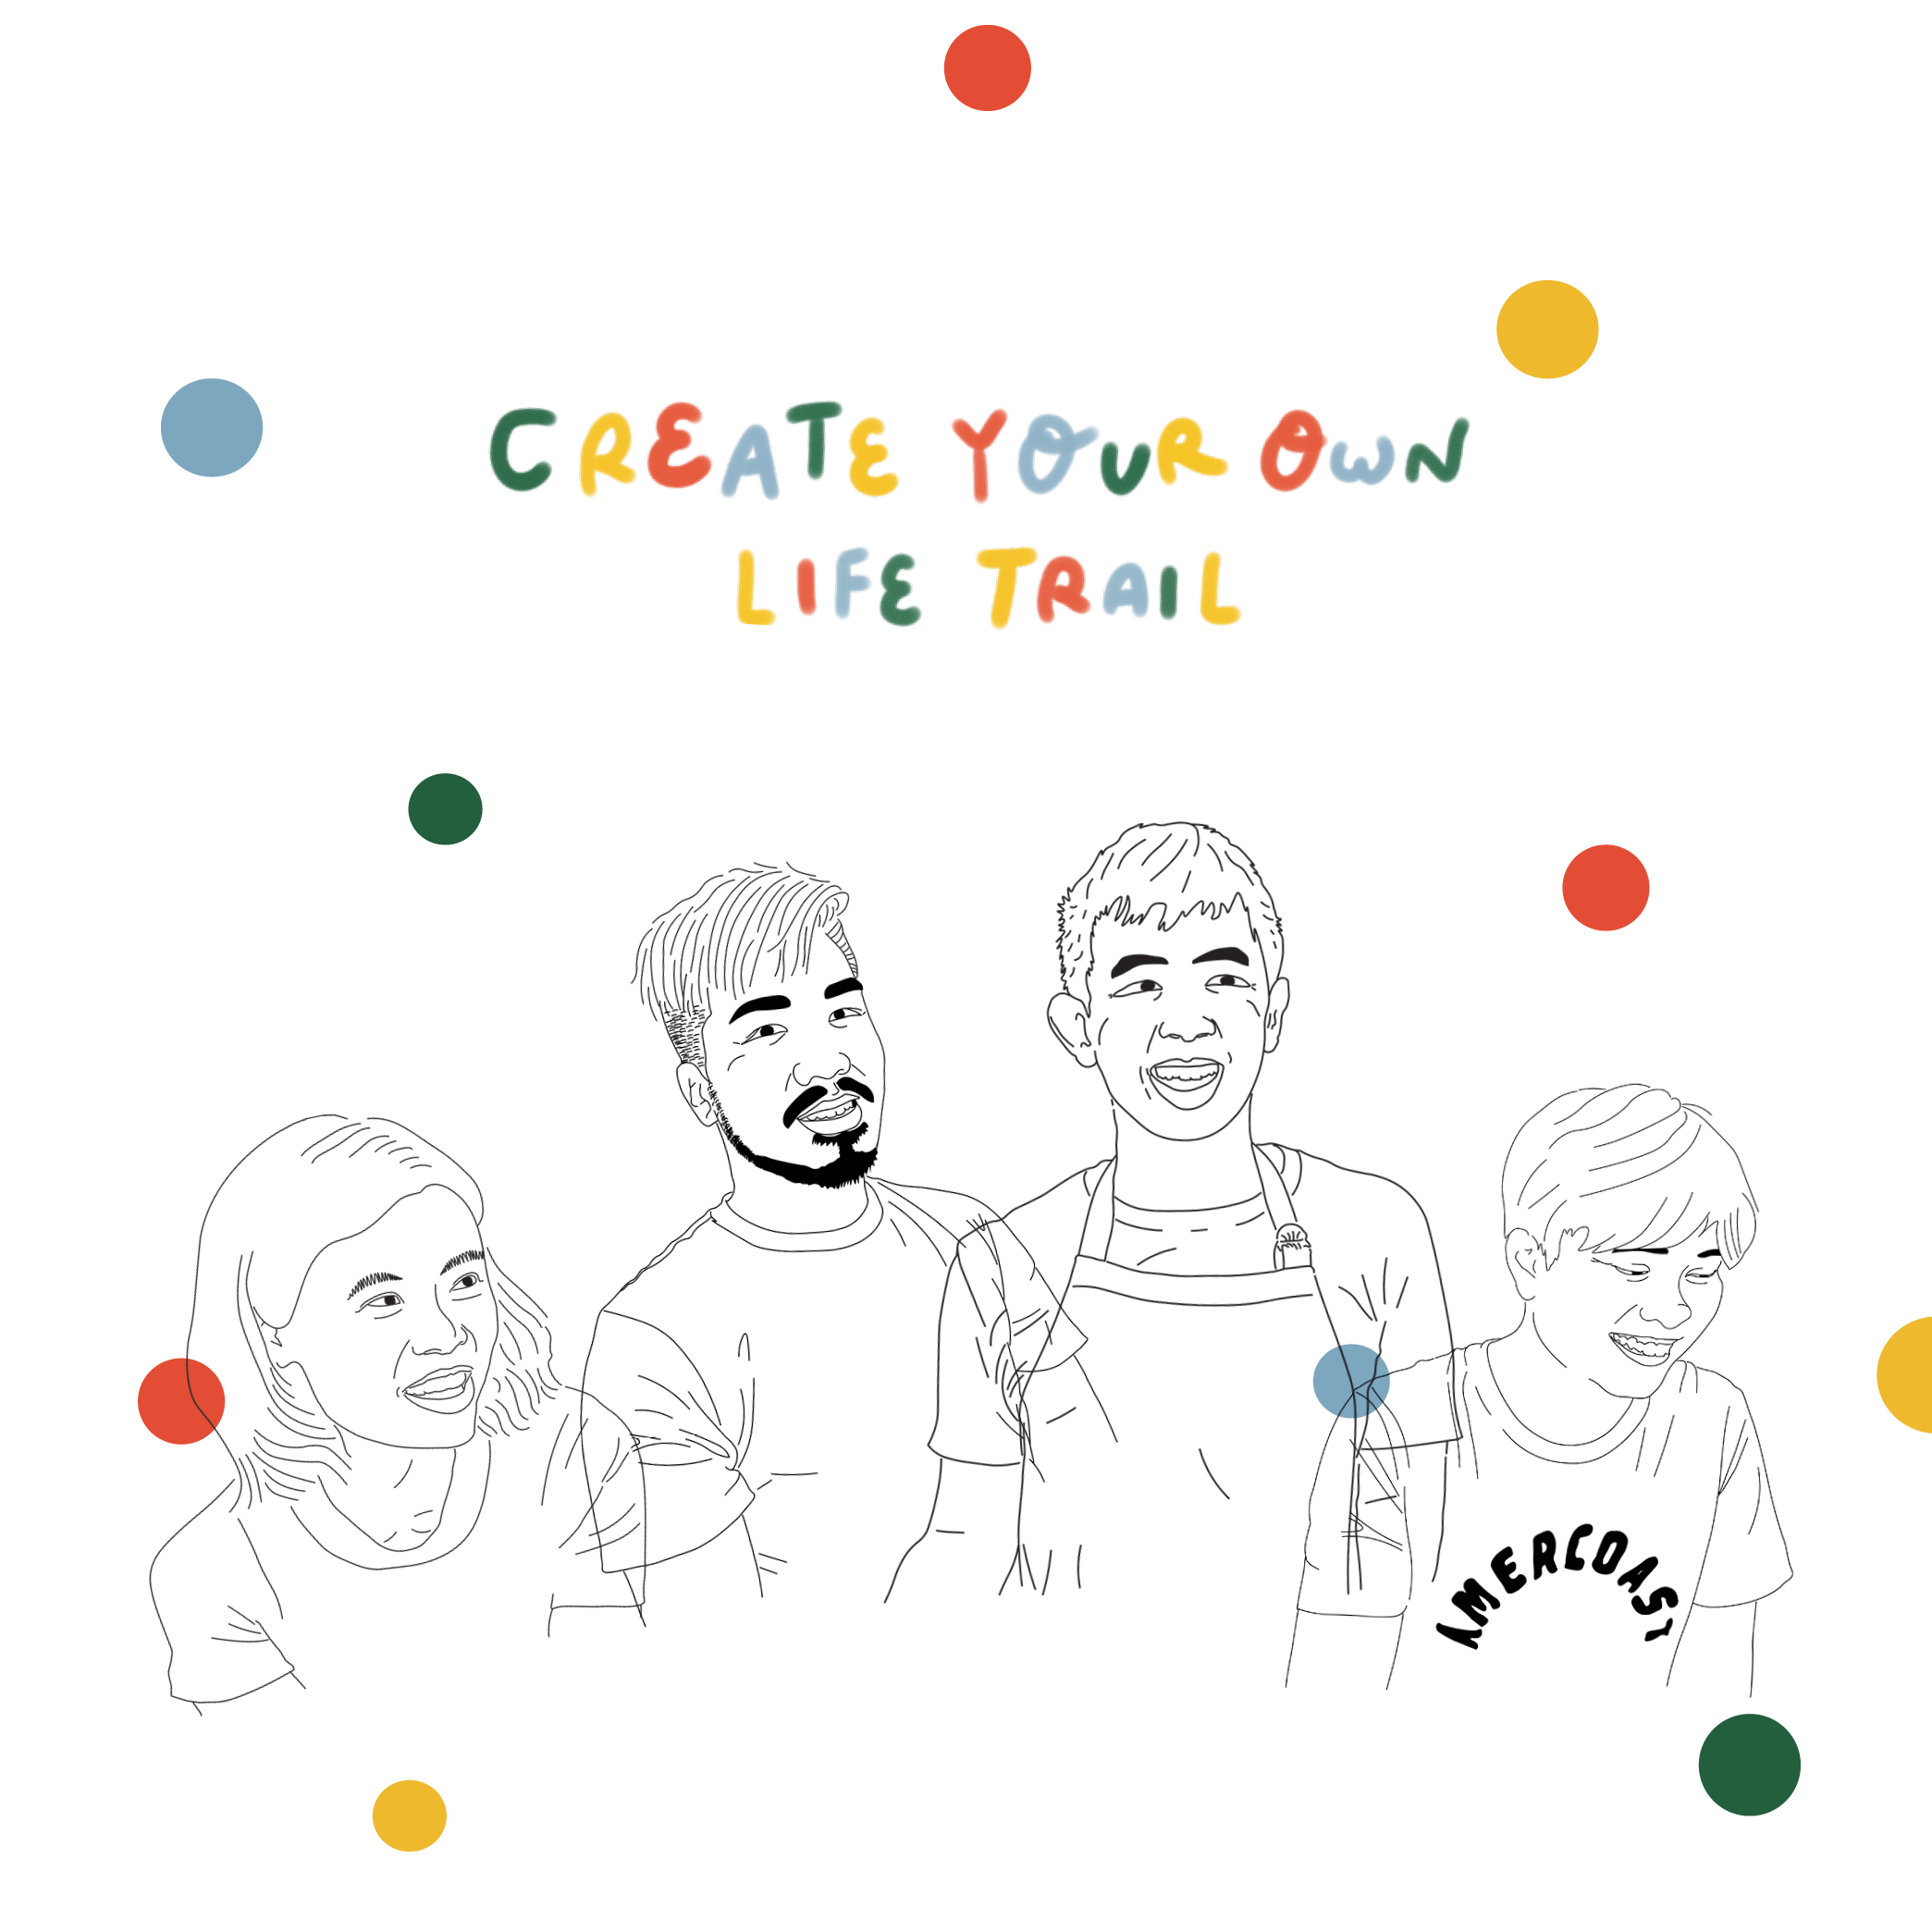 Create Your Own Life Trail - This July, we invite you toCREATE YOUR OWN LIFE TRAILThere are deep and universal patterns of behaviours called 'archetypes' that human beings across ages and spaces connect with. Have you ever wondered what archetype you play in the story of your life?USEFUL THINGS TO NOTE:+There are two parts to this process.Step 1: Discover your archetype at: https://tinyurl.com/bold-archetype-quizStep 2: Pick the trail curated for your archetypal element to meet your muse, explore the hood, ask questions and enjoy an experience worth more than $10 for just $5!+ There are no fixed trail timings. We believe that you are the creator of your own life thus this trail is largely self-guided. Do it at your own time and pleasure whether it is on your own or with a group of friends.+ Upon sign up, you will receive a note to collect the trail guide at Bold At Work+ Your trail begins from there!